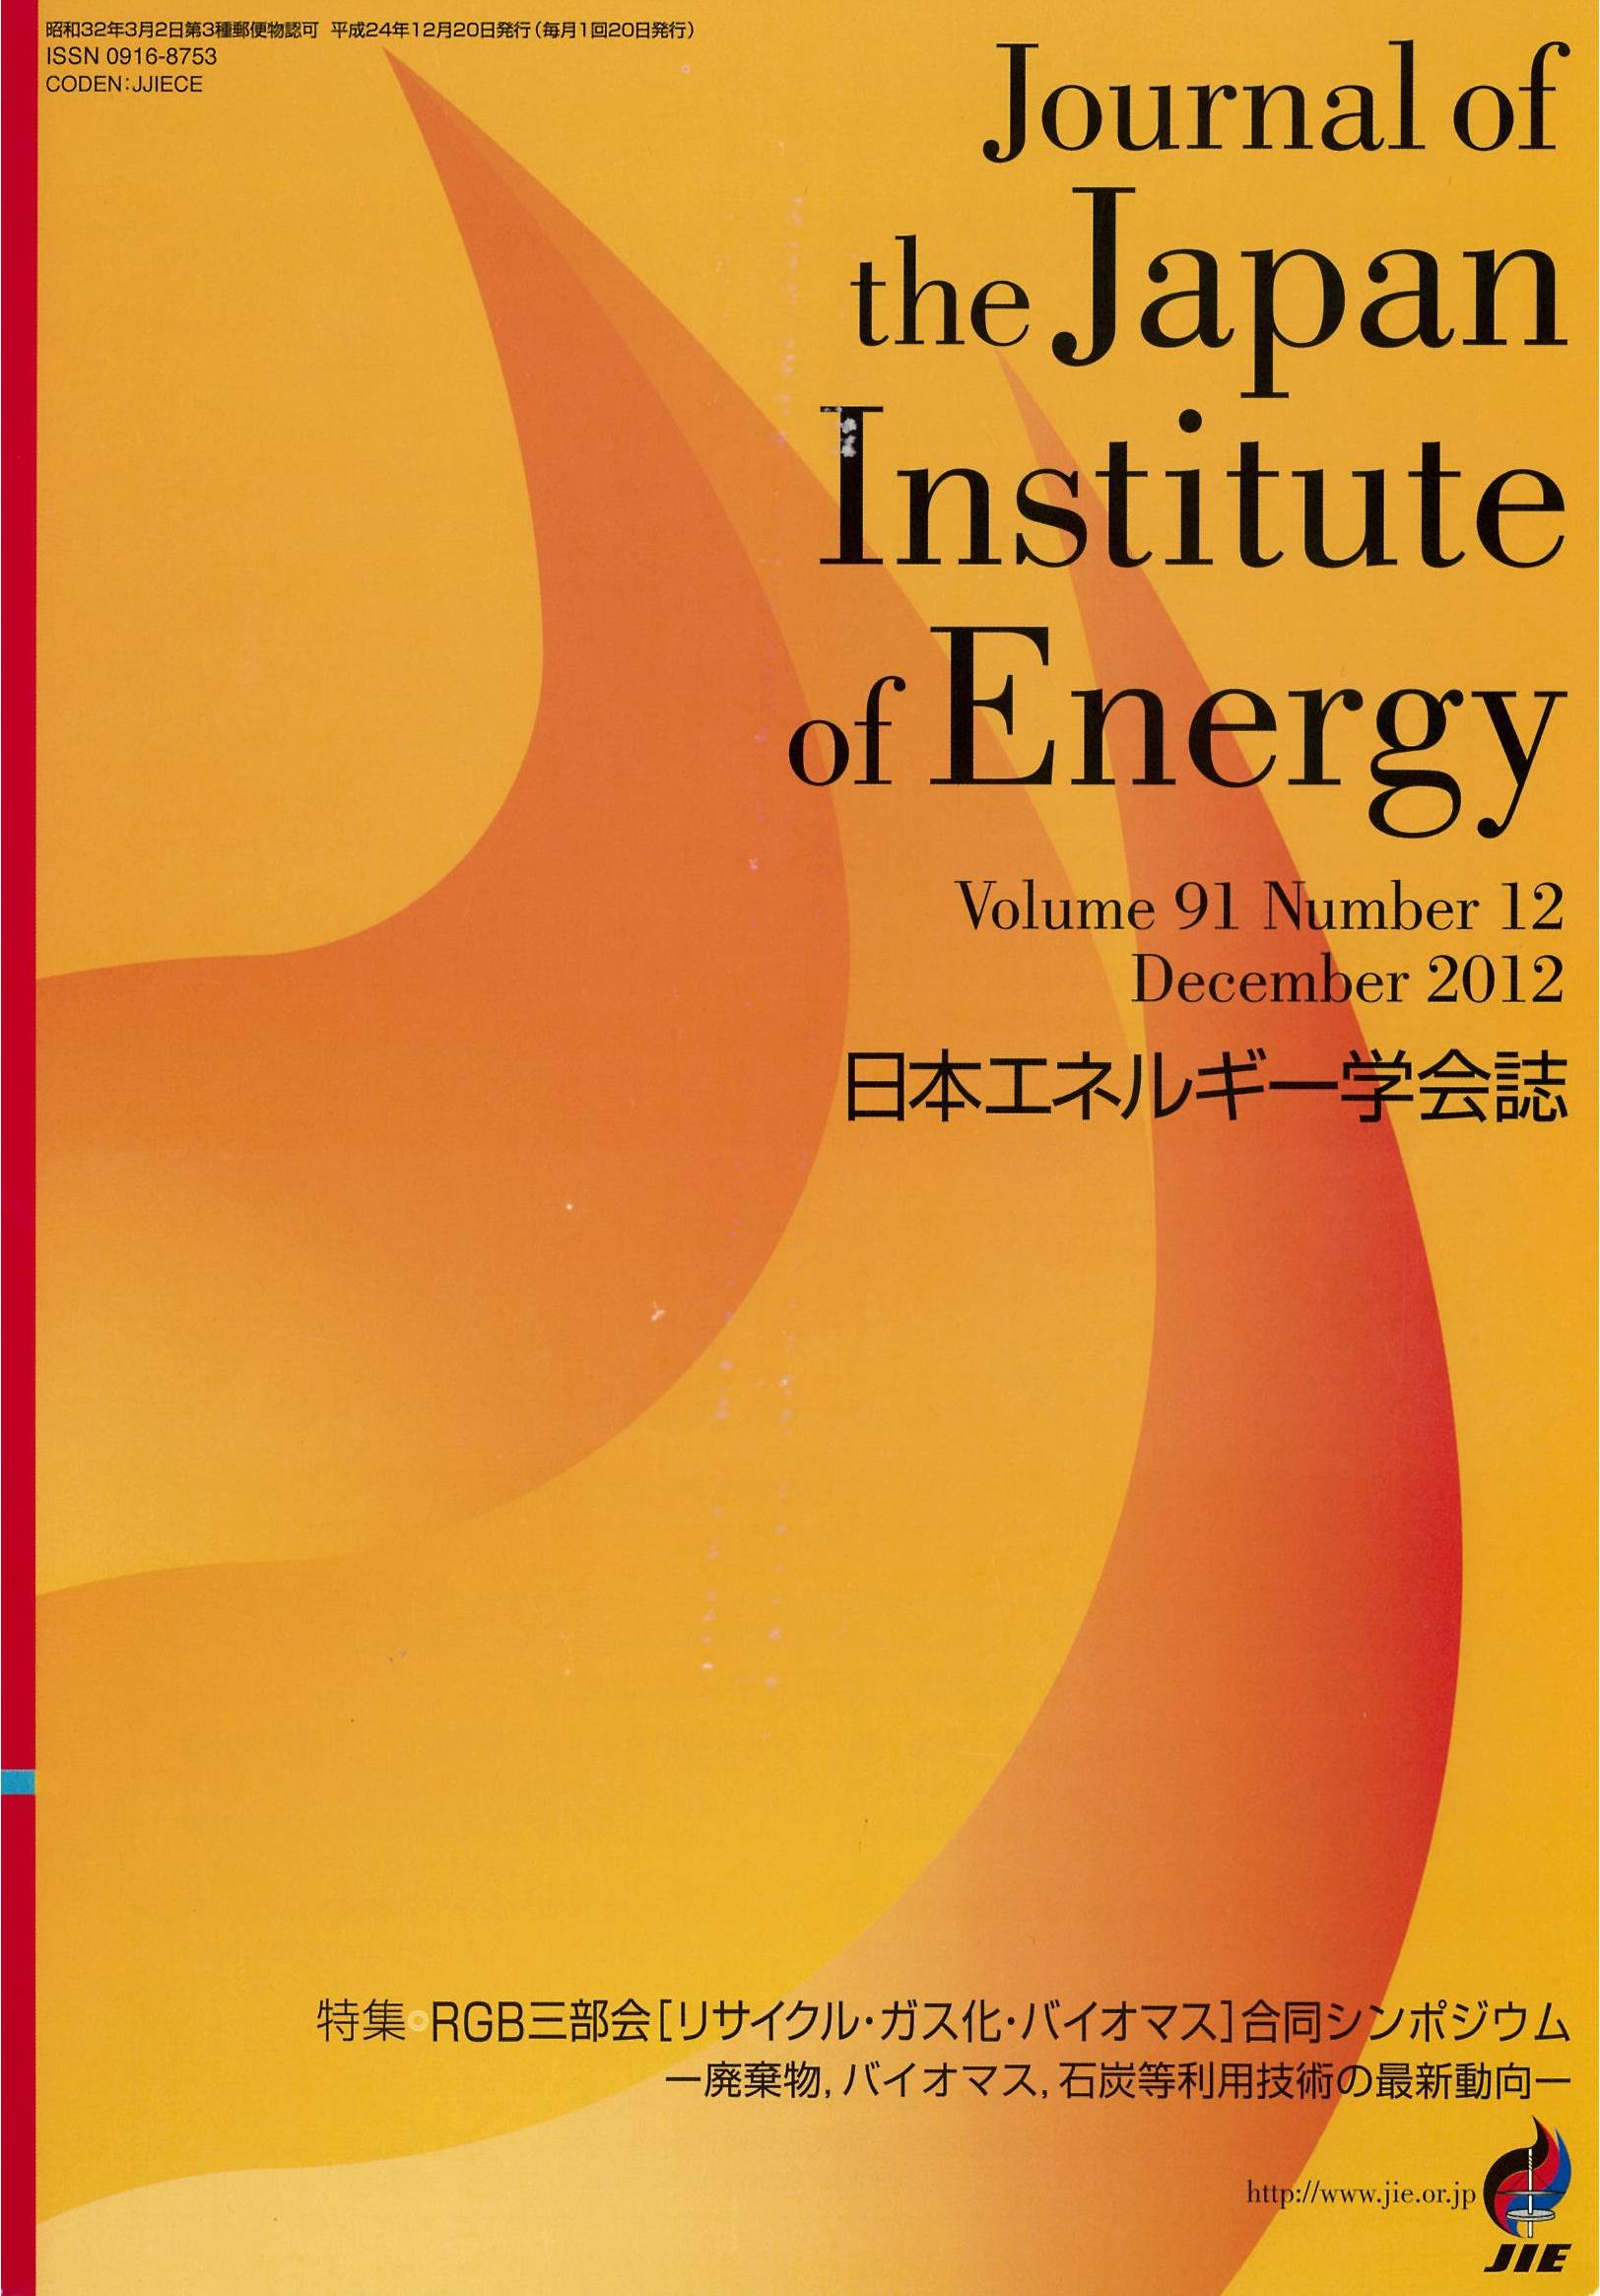 Journal of the Japan Institute of Energy Vol.91 No.12 (2012年12月號)